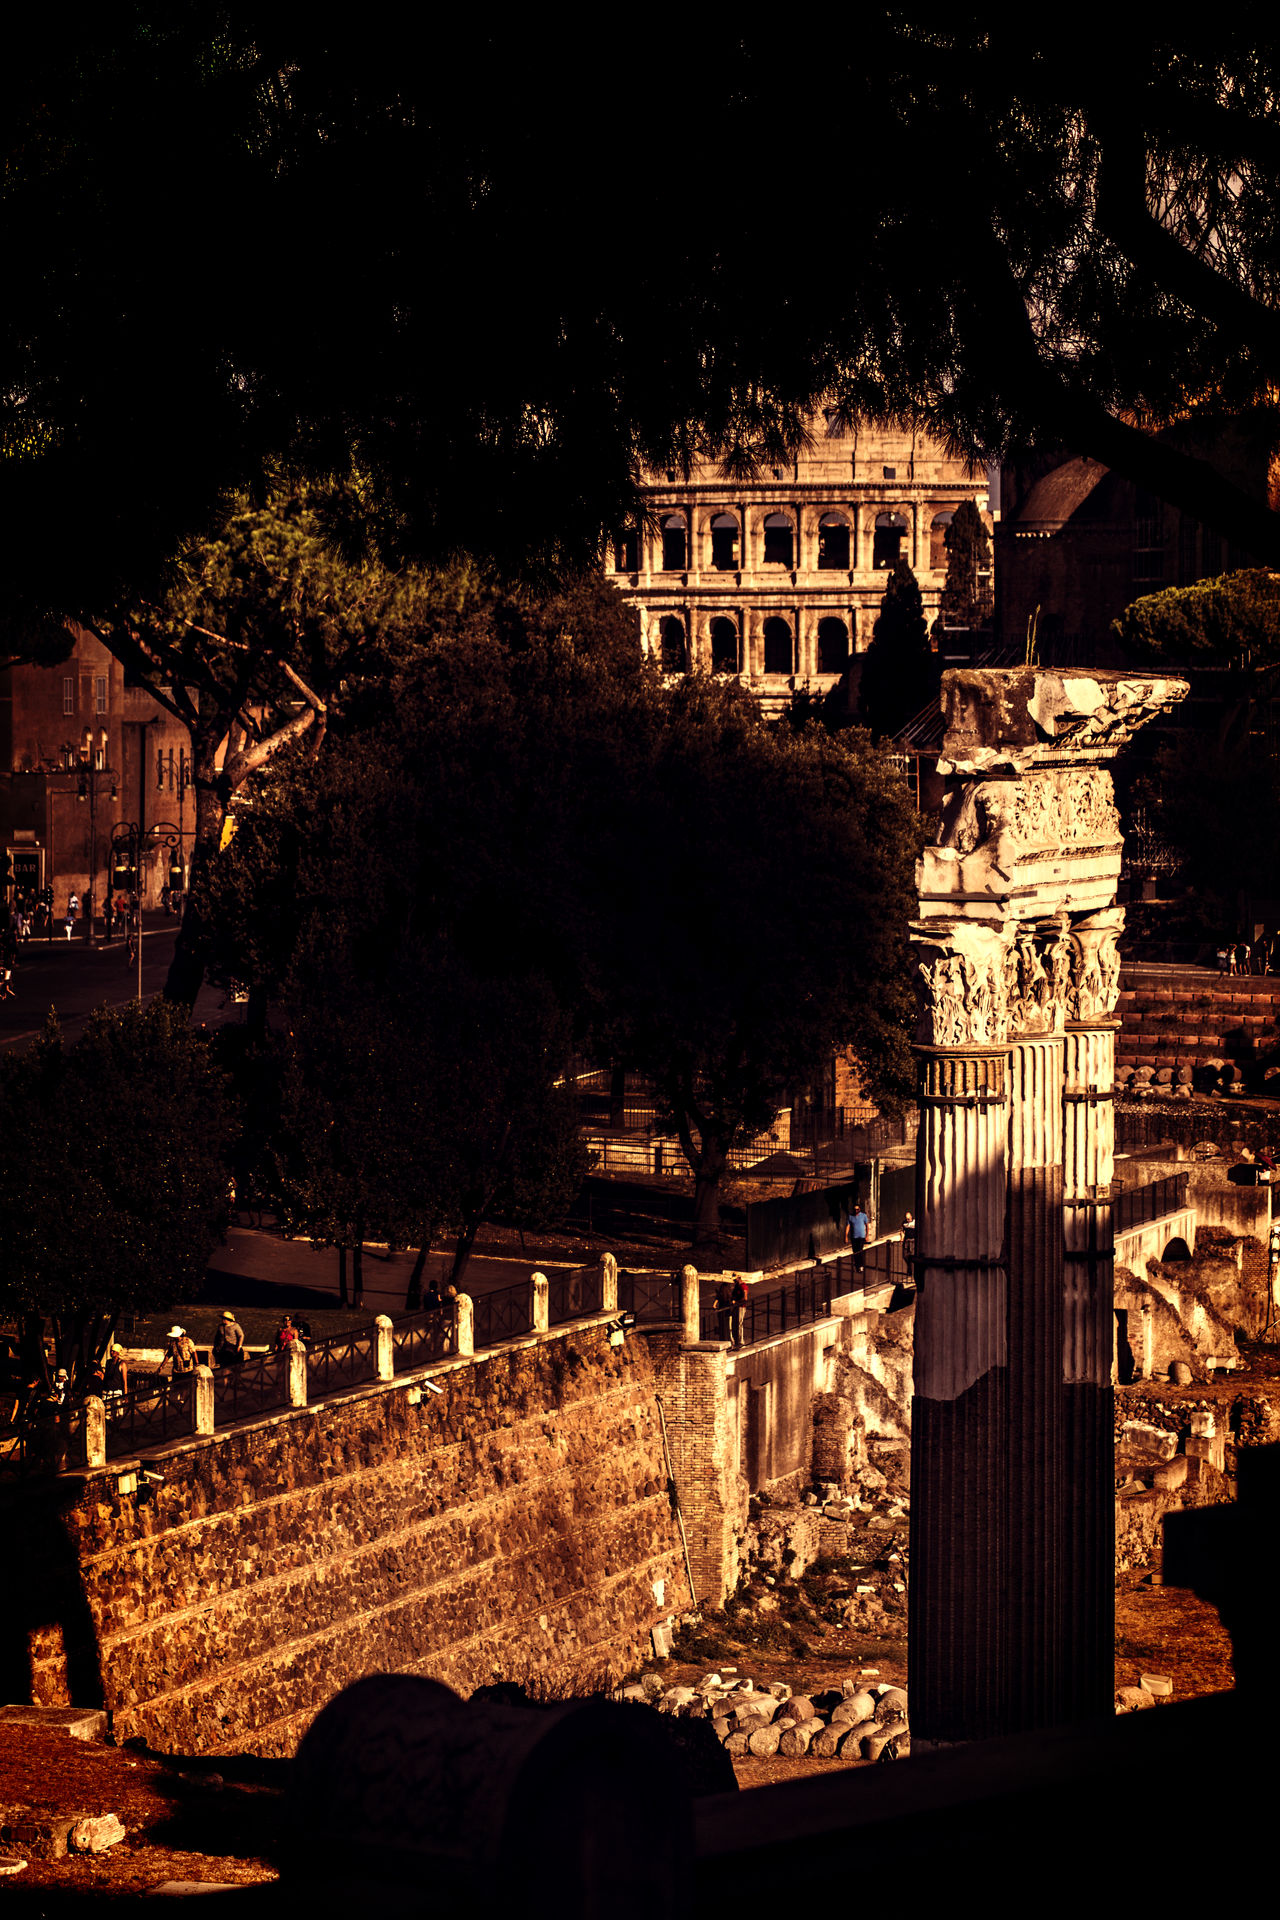 #Aeternalcity #essentials #History #Memories #ourstory #Romans #urbanlandscape #warm Colors